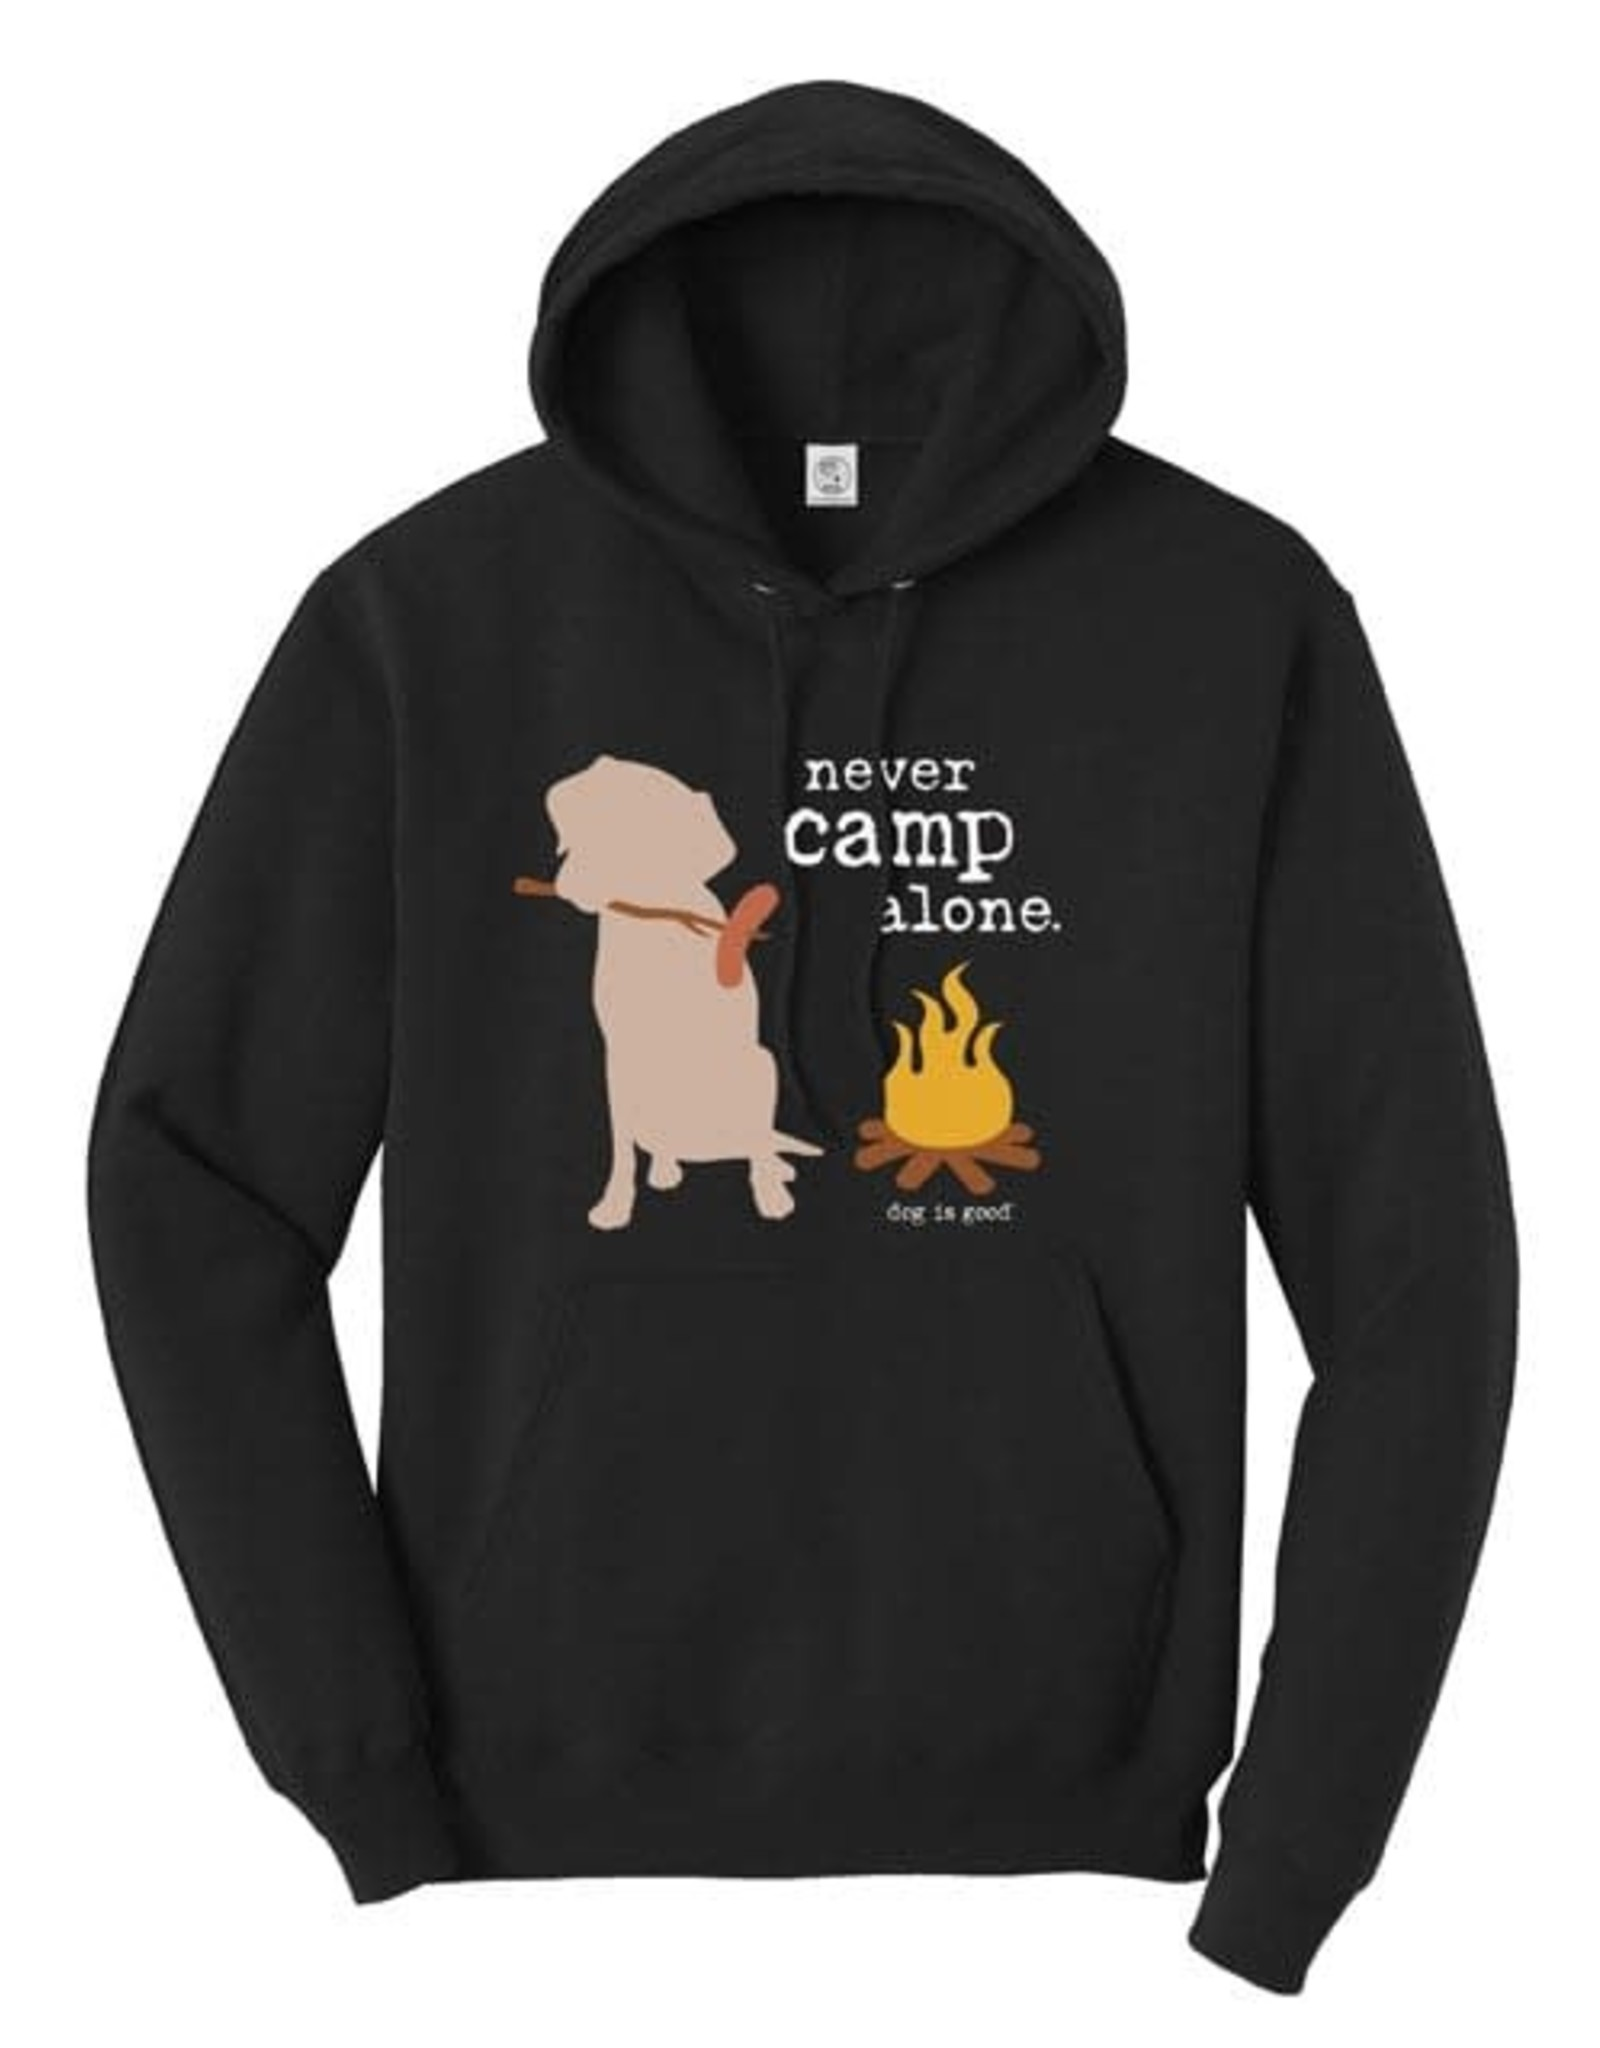 Dog is Good 2XL Hoodie Never Camp Alone